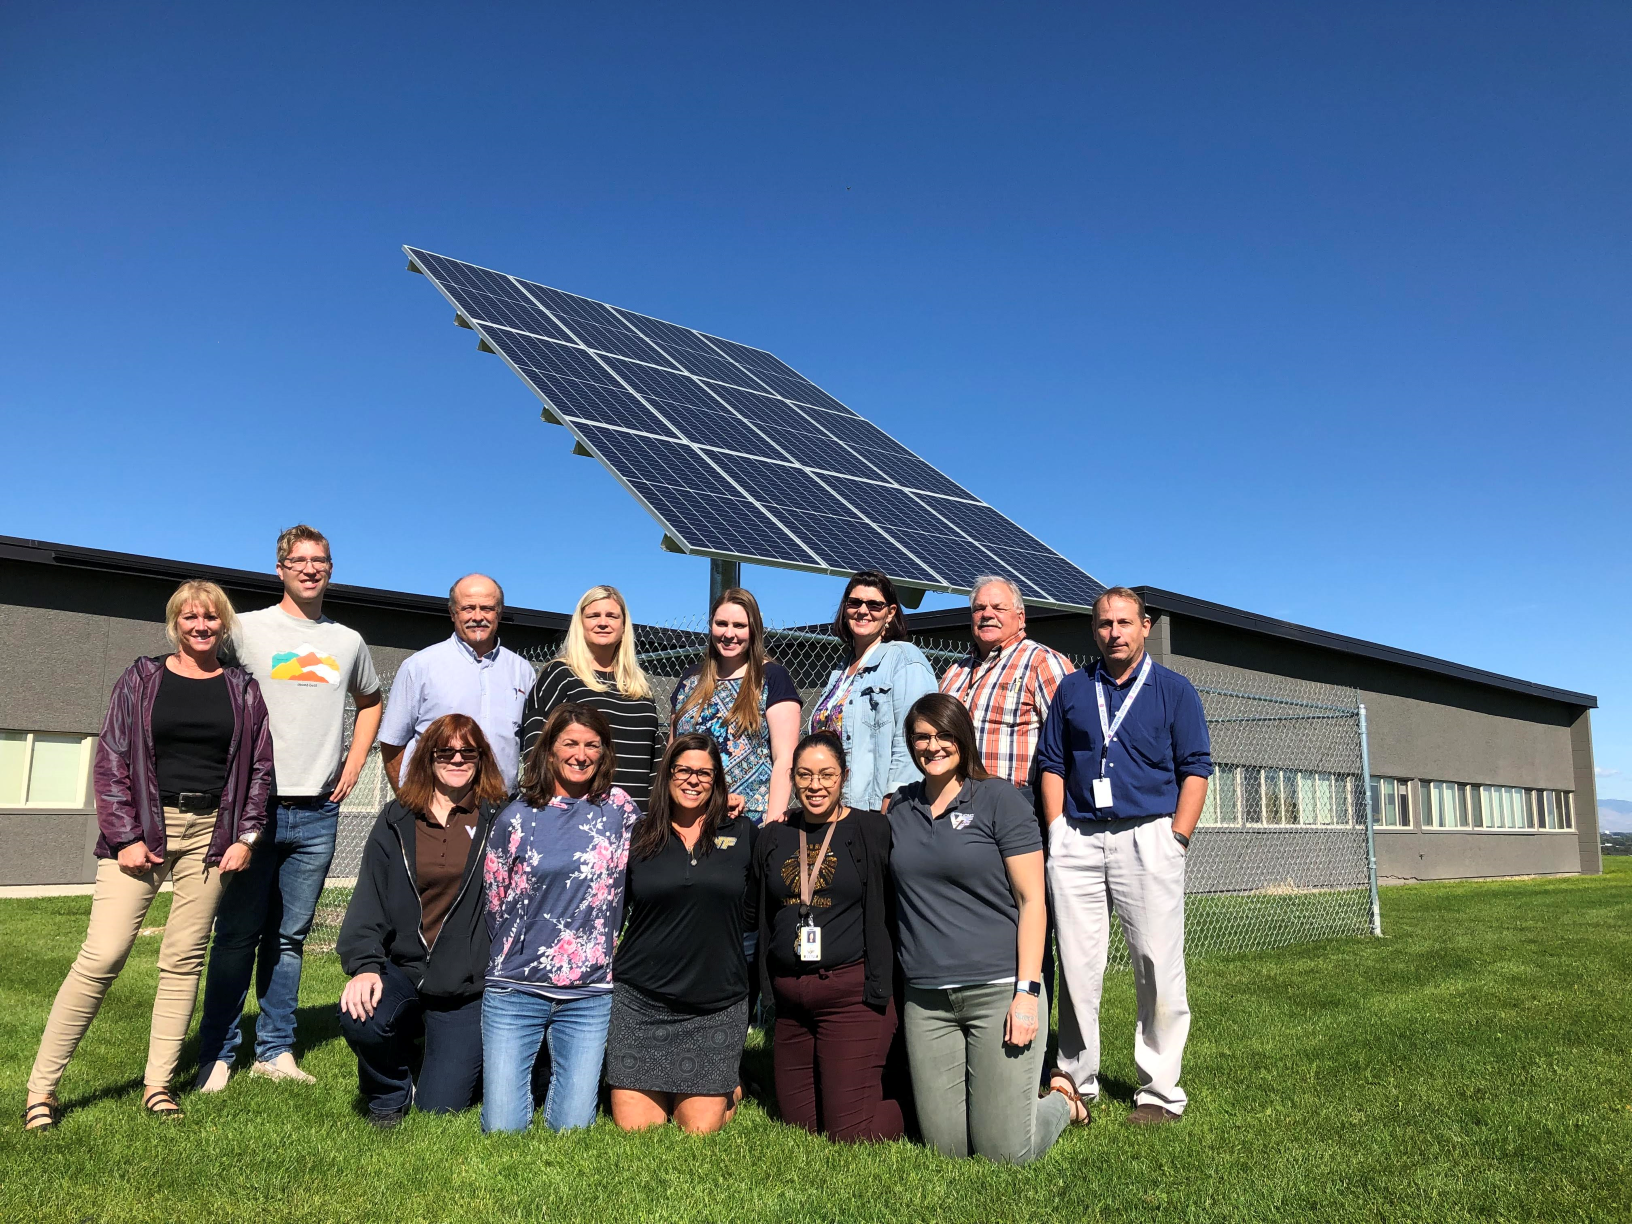 teachers standing in front of a demonstration solar array